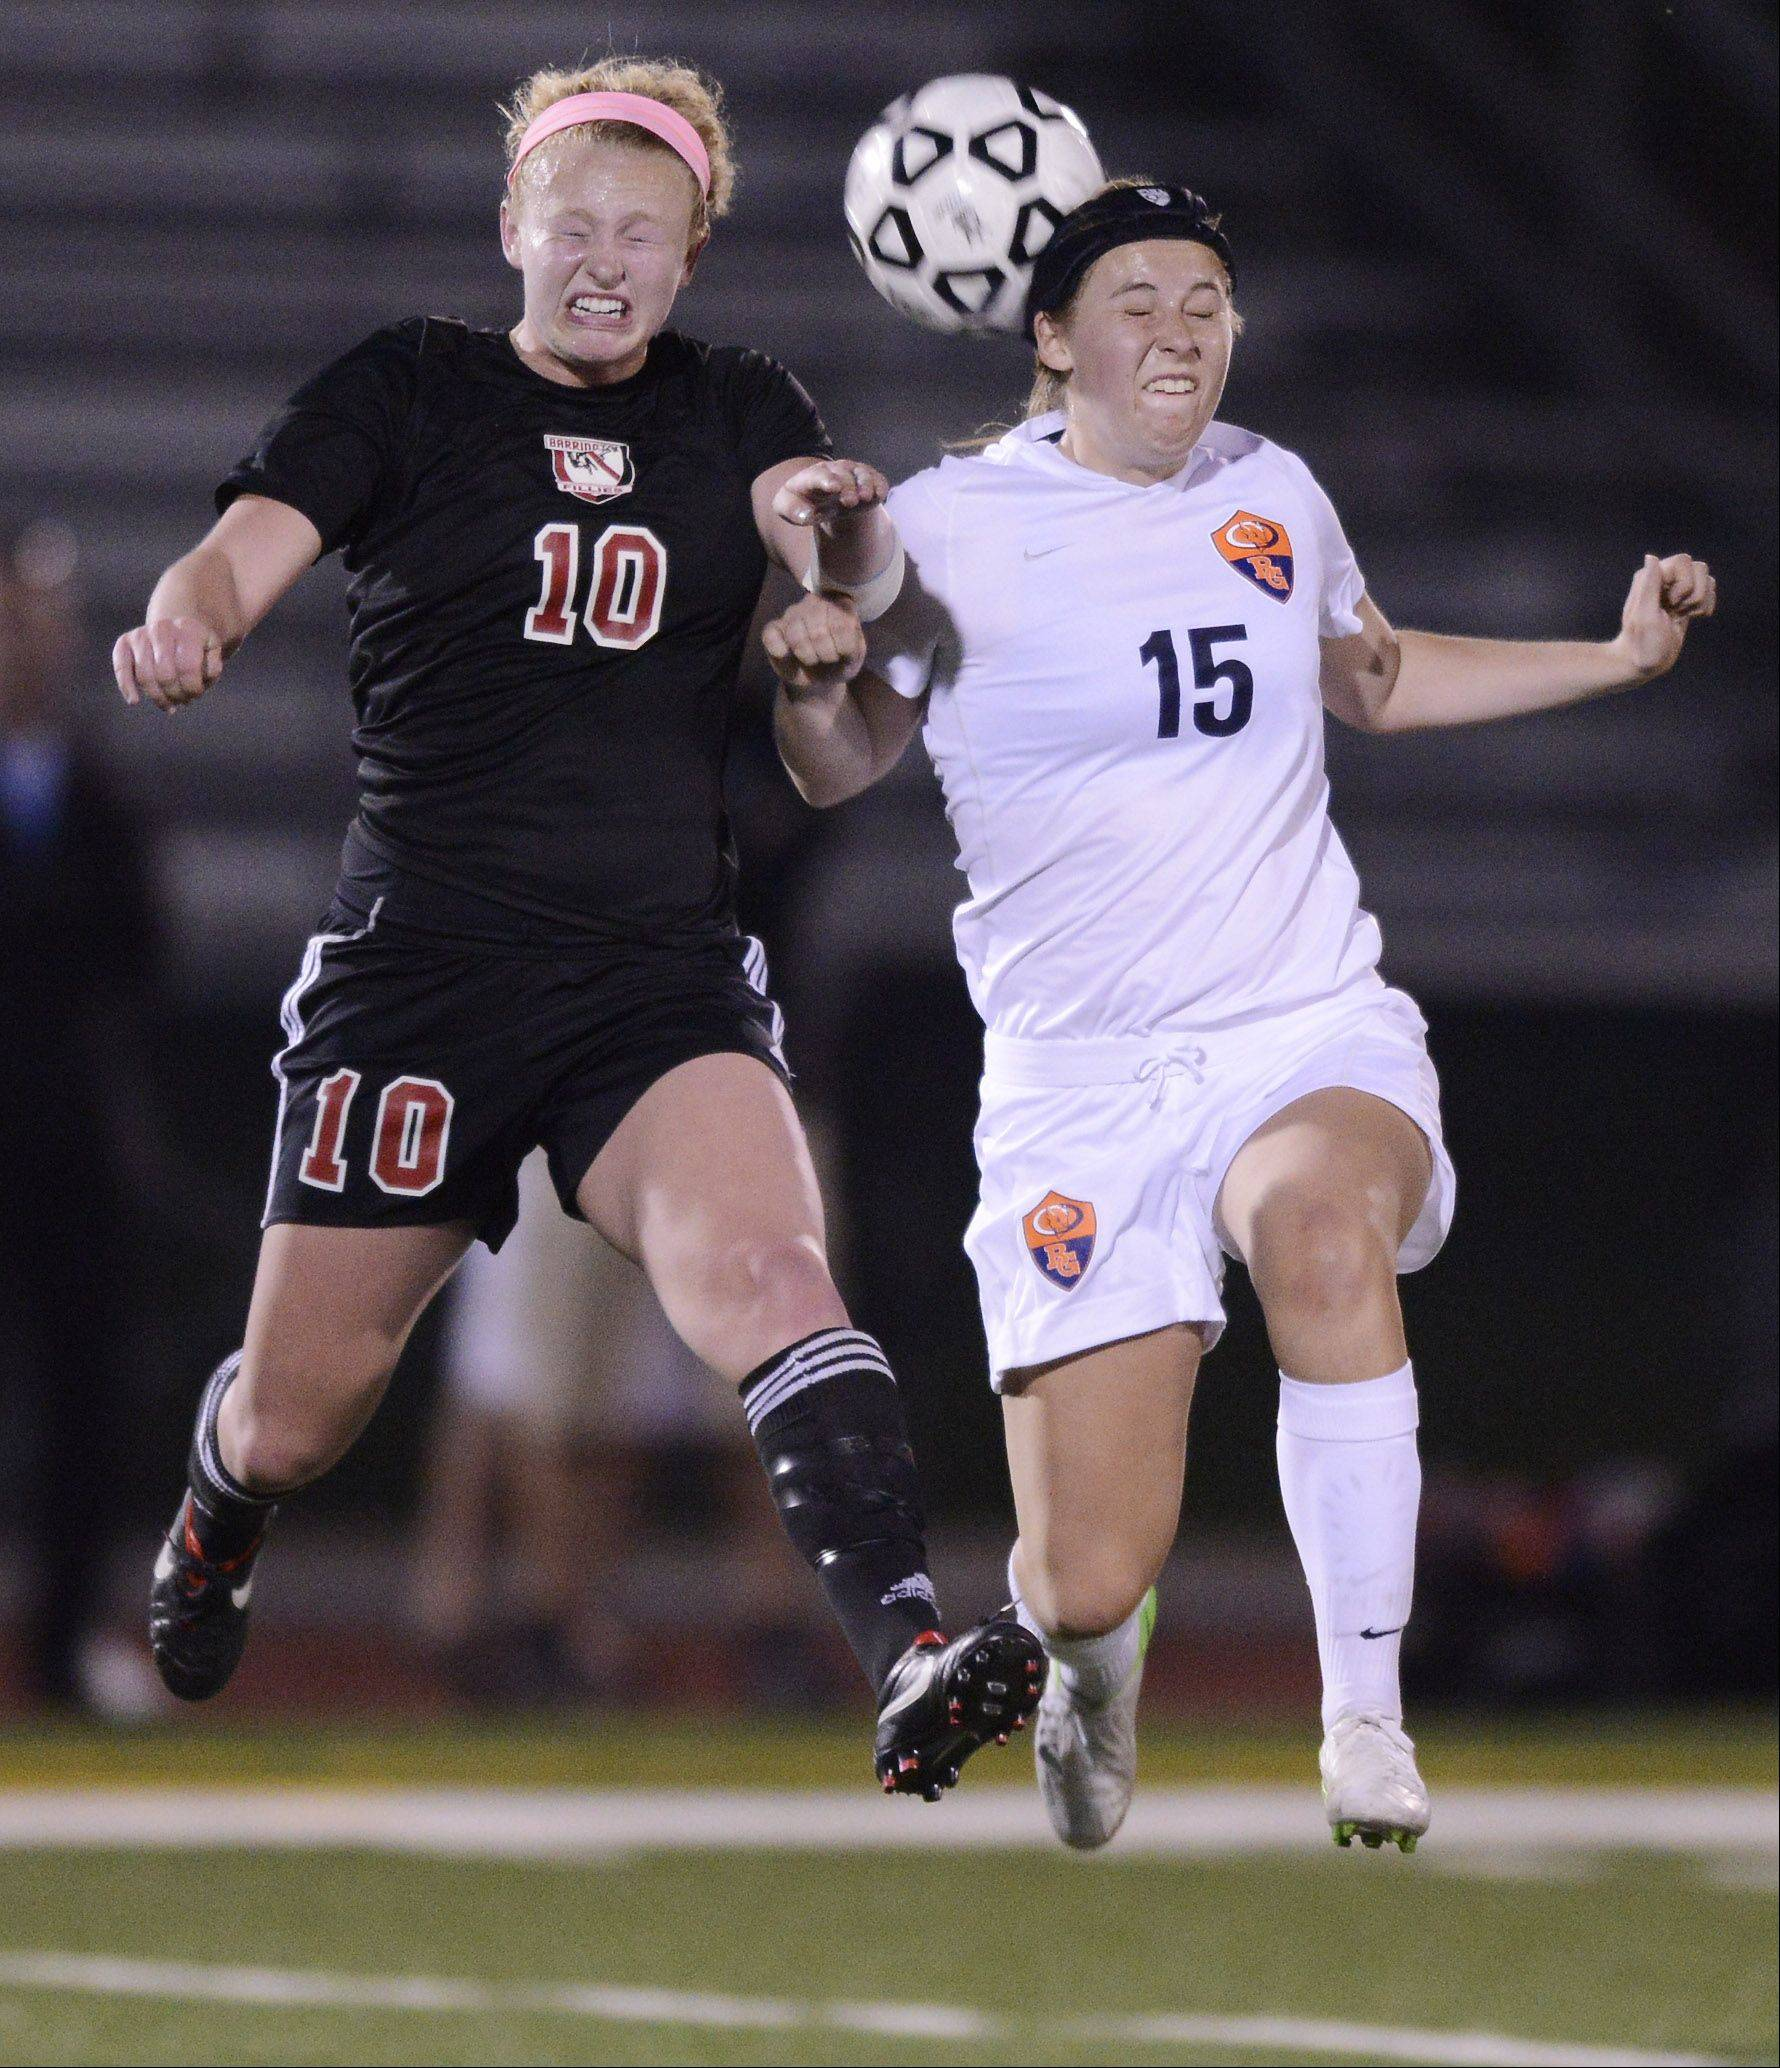 Barrington's Molly Pfeiffer, left, and Buffalo Grove's Kelly VandeMerkt leap for a header during Wednesday's Mid-Suburban League championship game at Buffalo Grove.